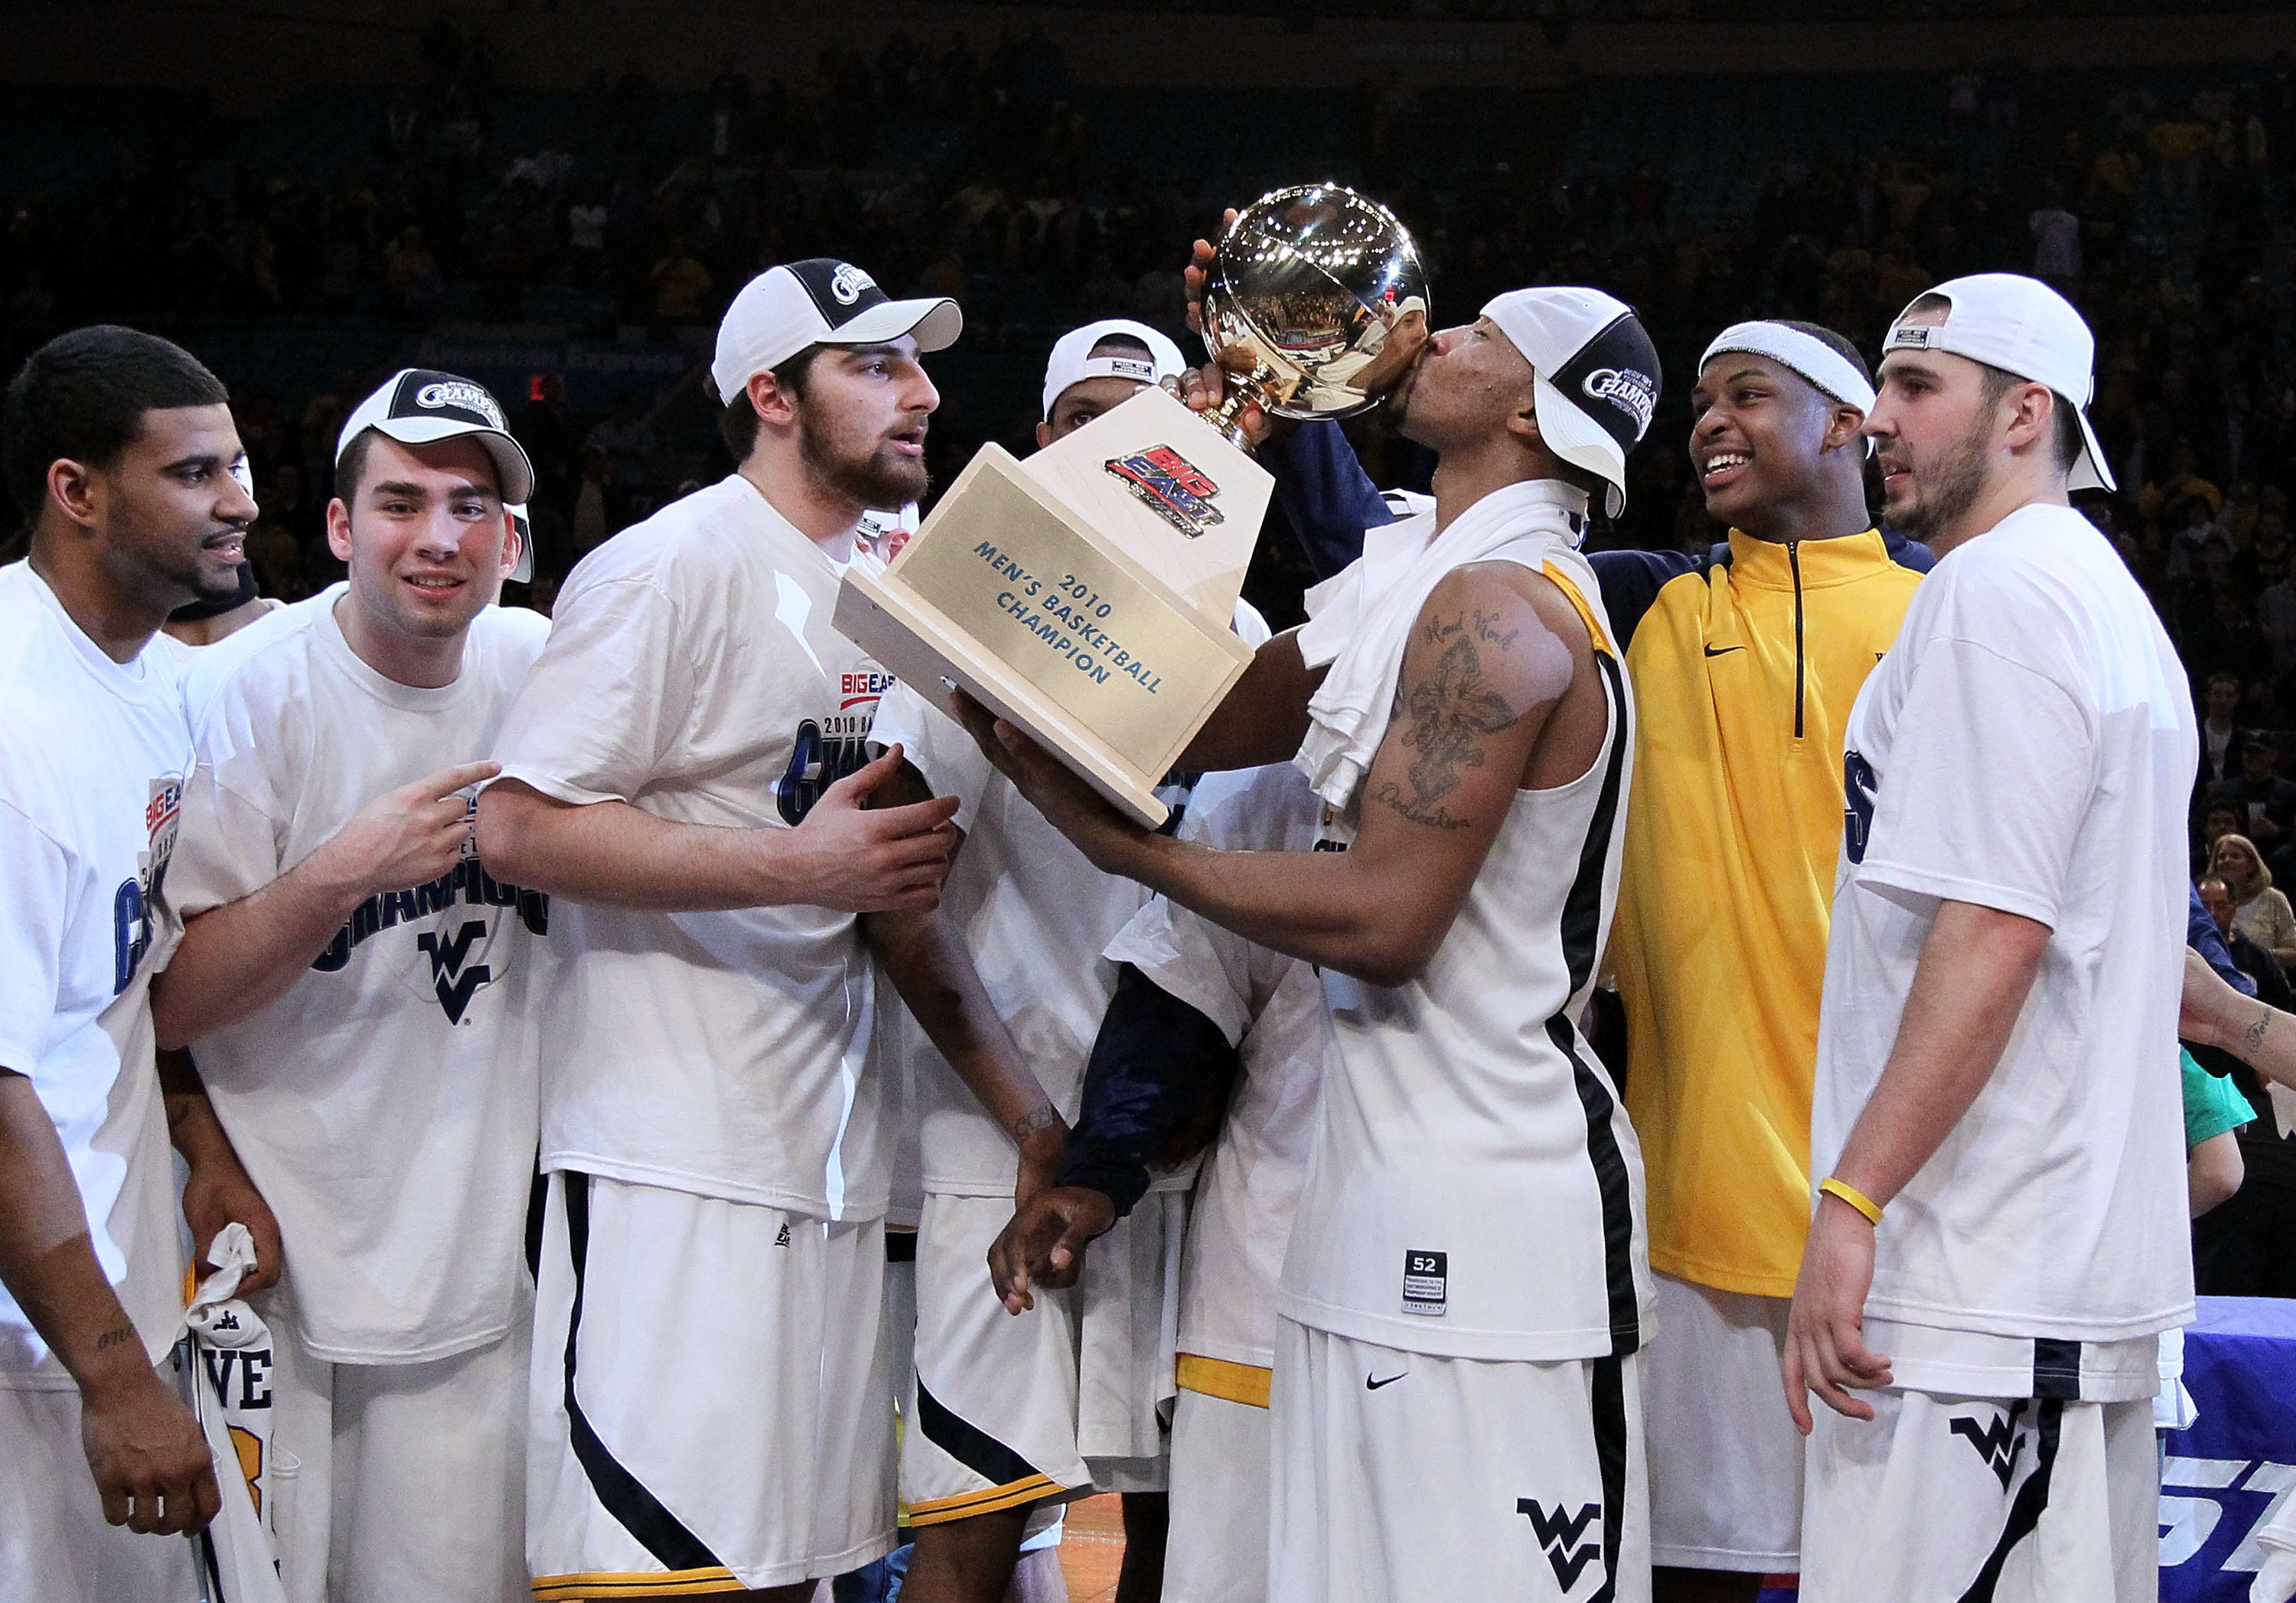 NEW YORK - MARCH 13: Da'Sean Butler #1 of the West Virginia Mountaineers kisses the championship trophy after defeating the Georgetown Hoyas during the championship of the 2010 NCAA Big East Tournament at Madison Square Garden on March 13, 2010 in New Yor